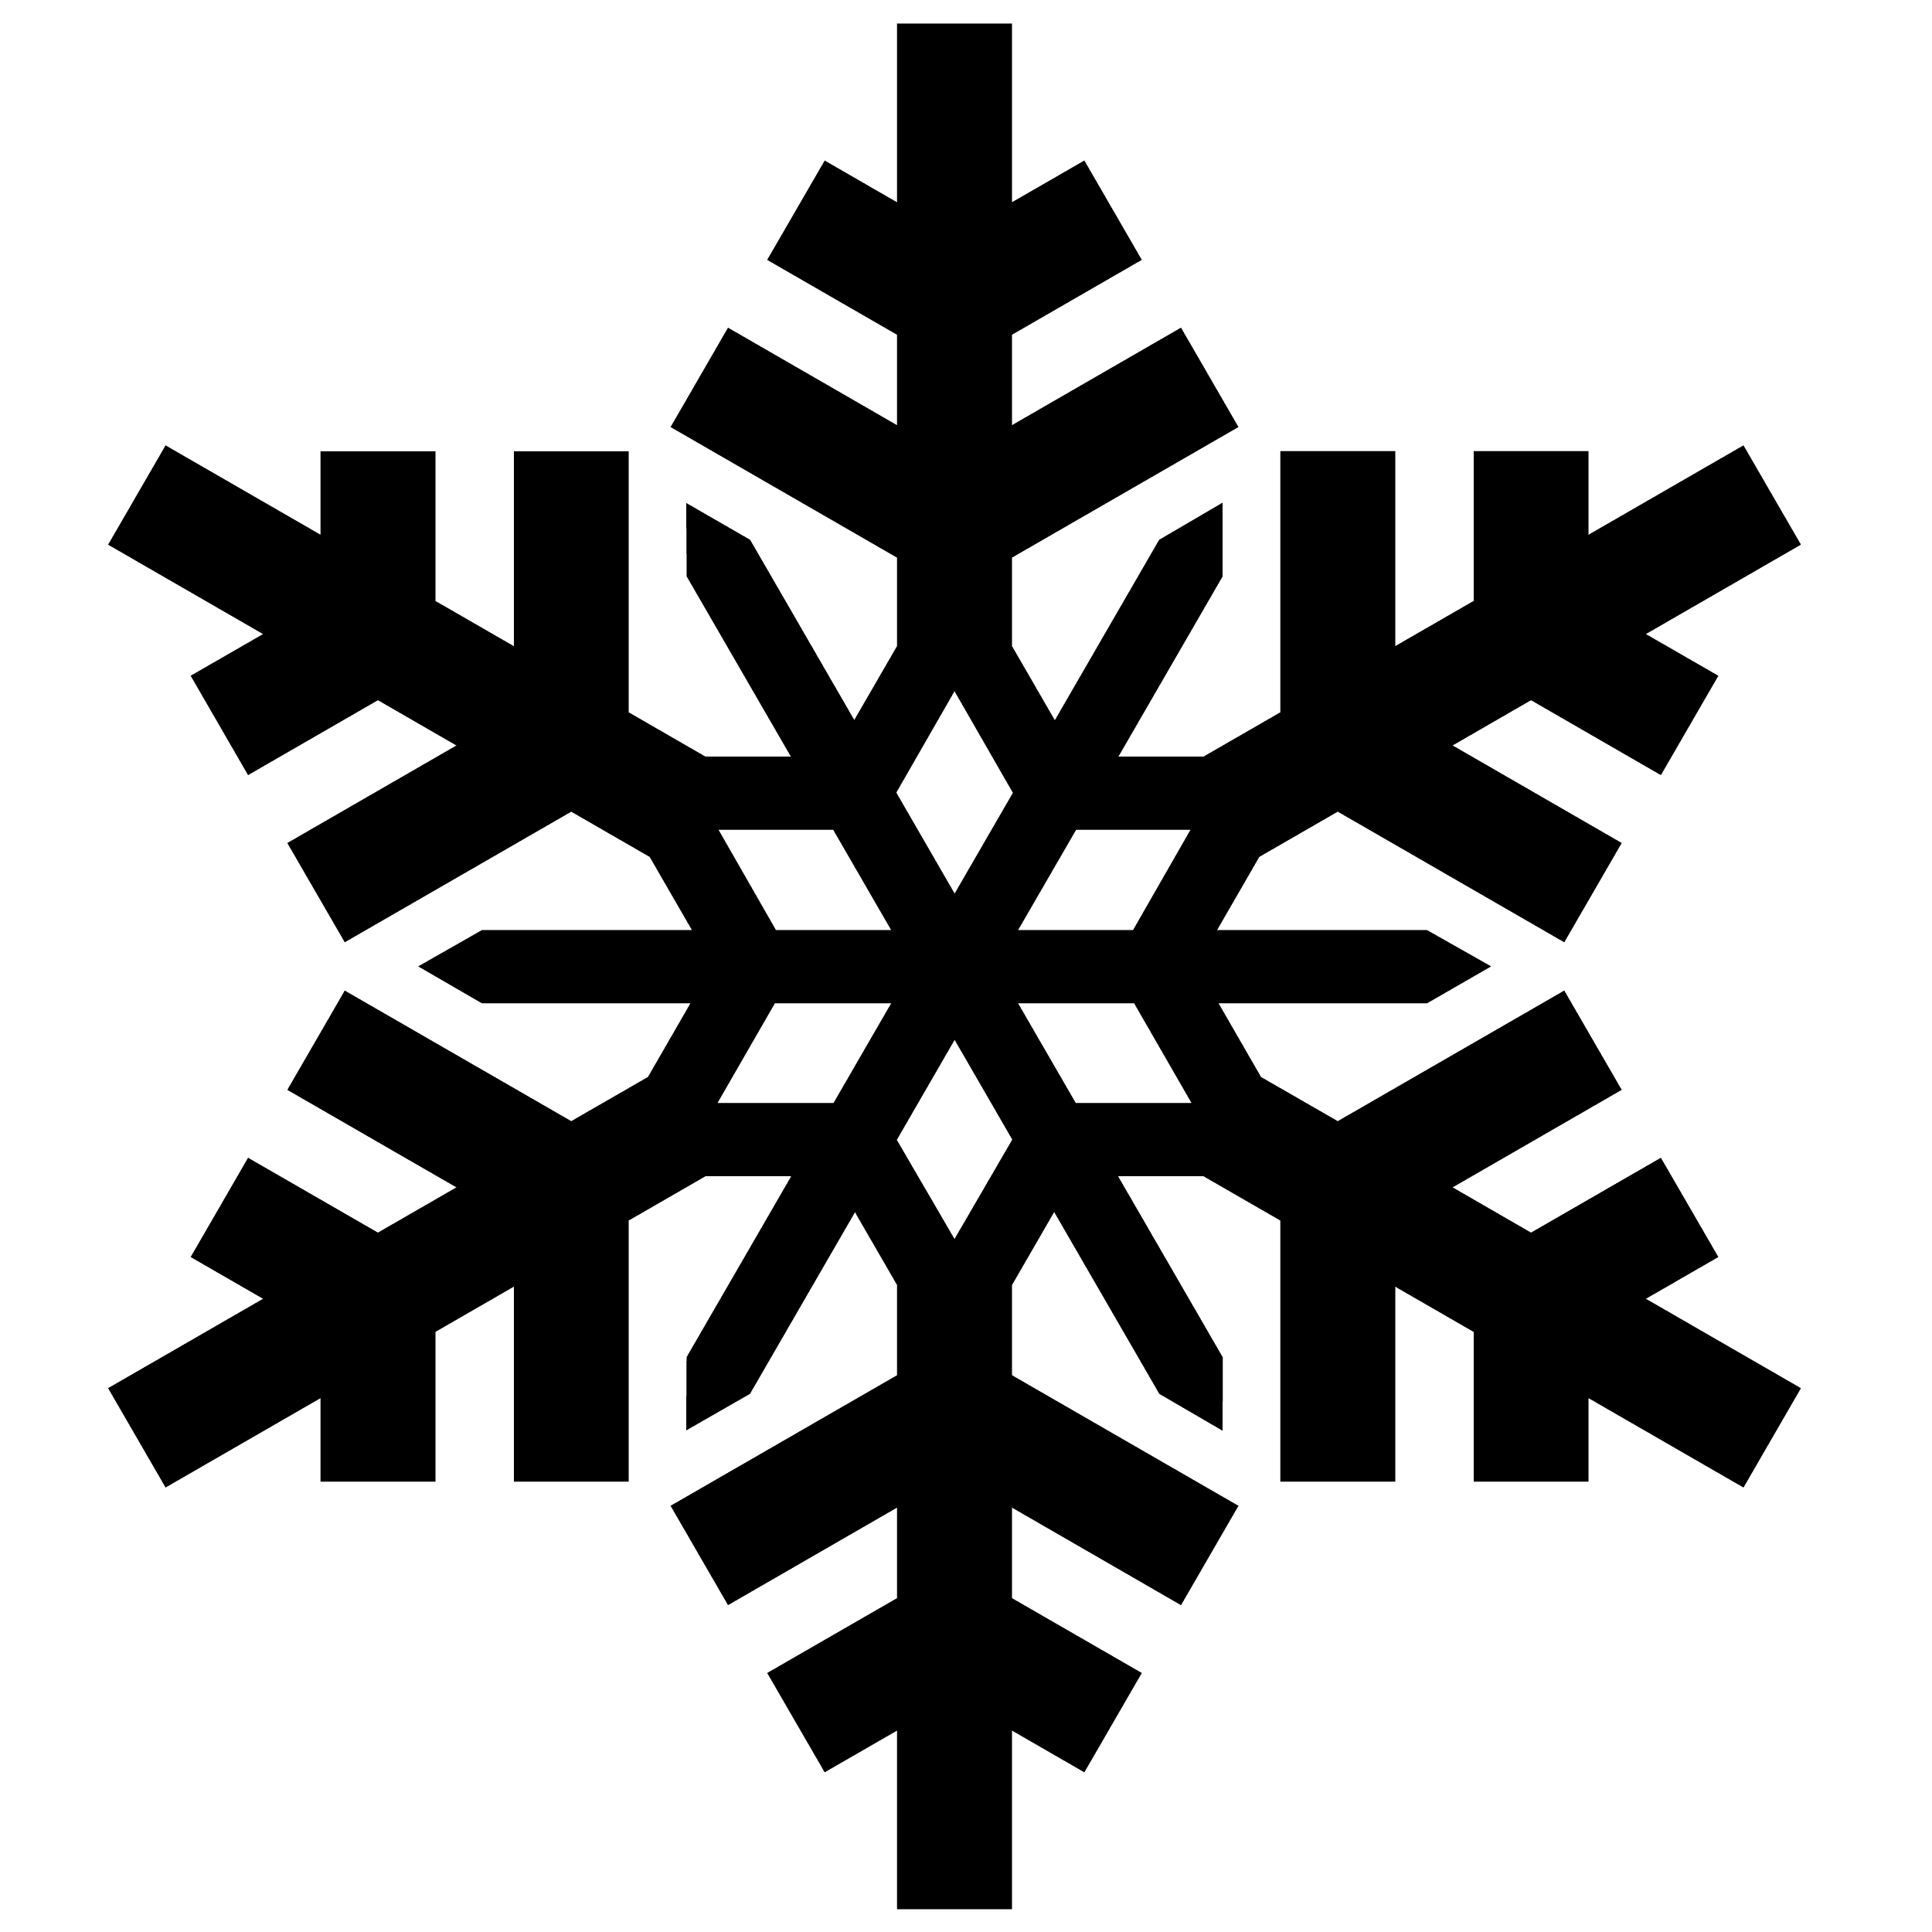 16 Winter Snowflakes Vector Free Png Images - Snowflake ... Christmas Snowflake Silhouette